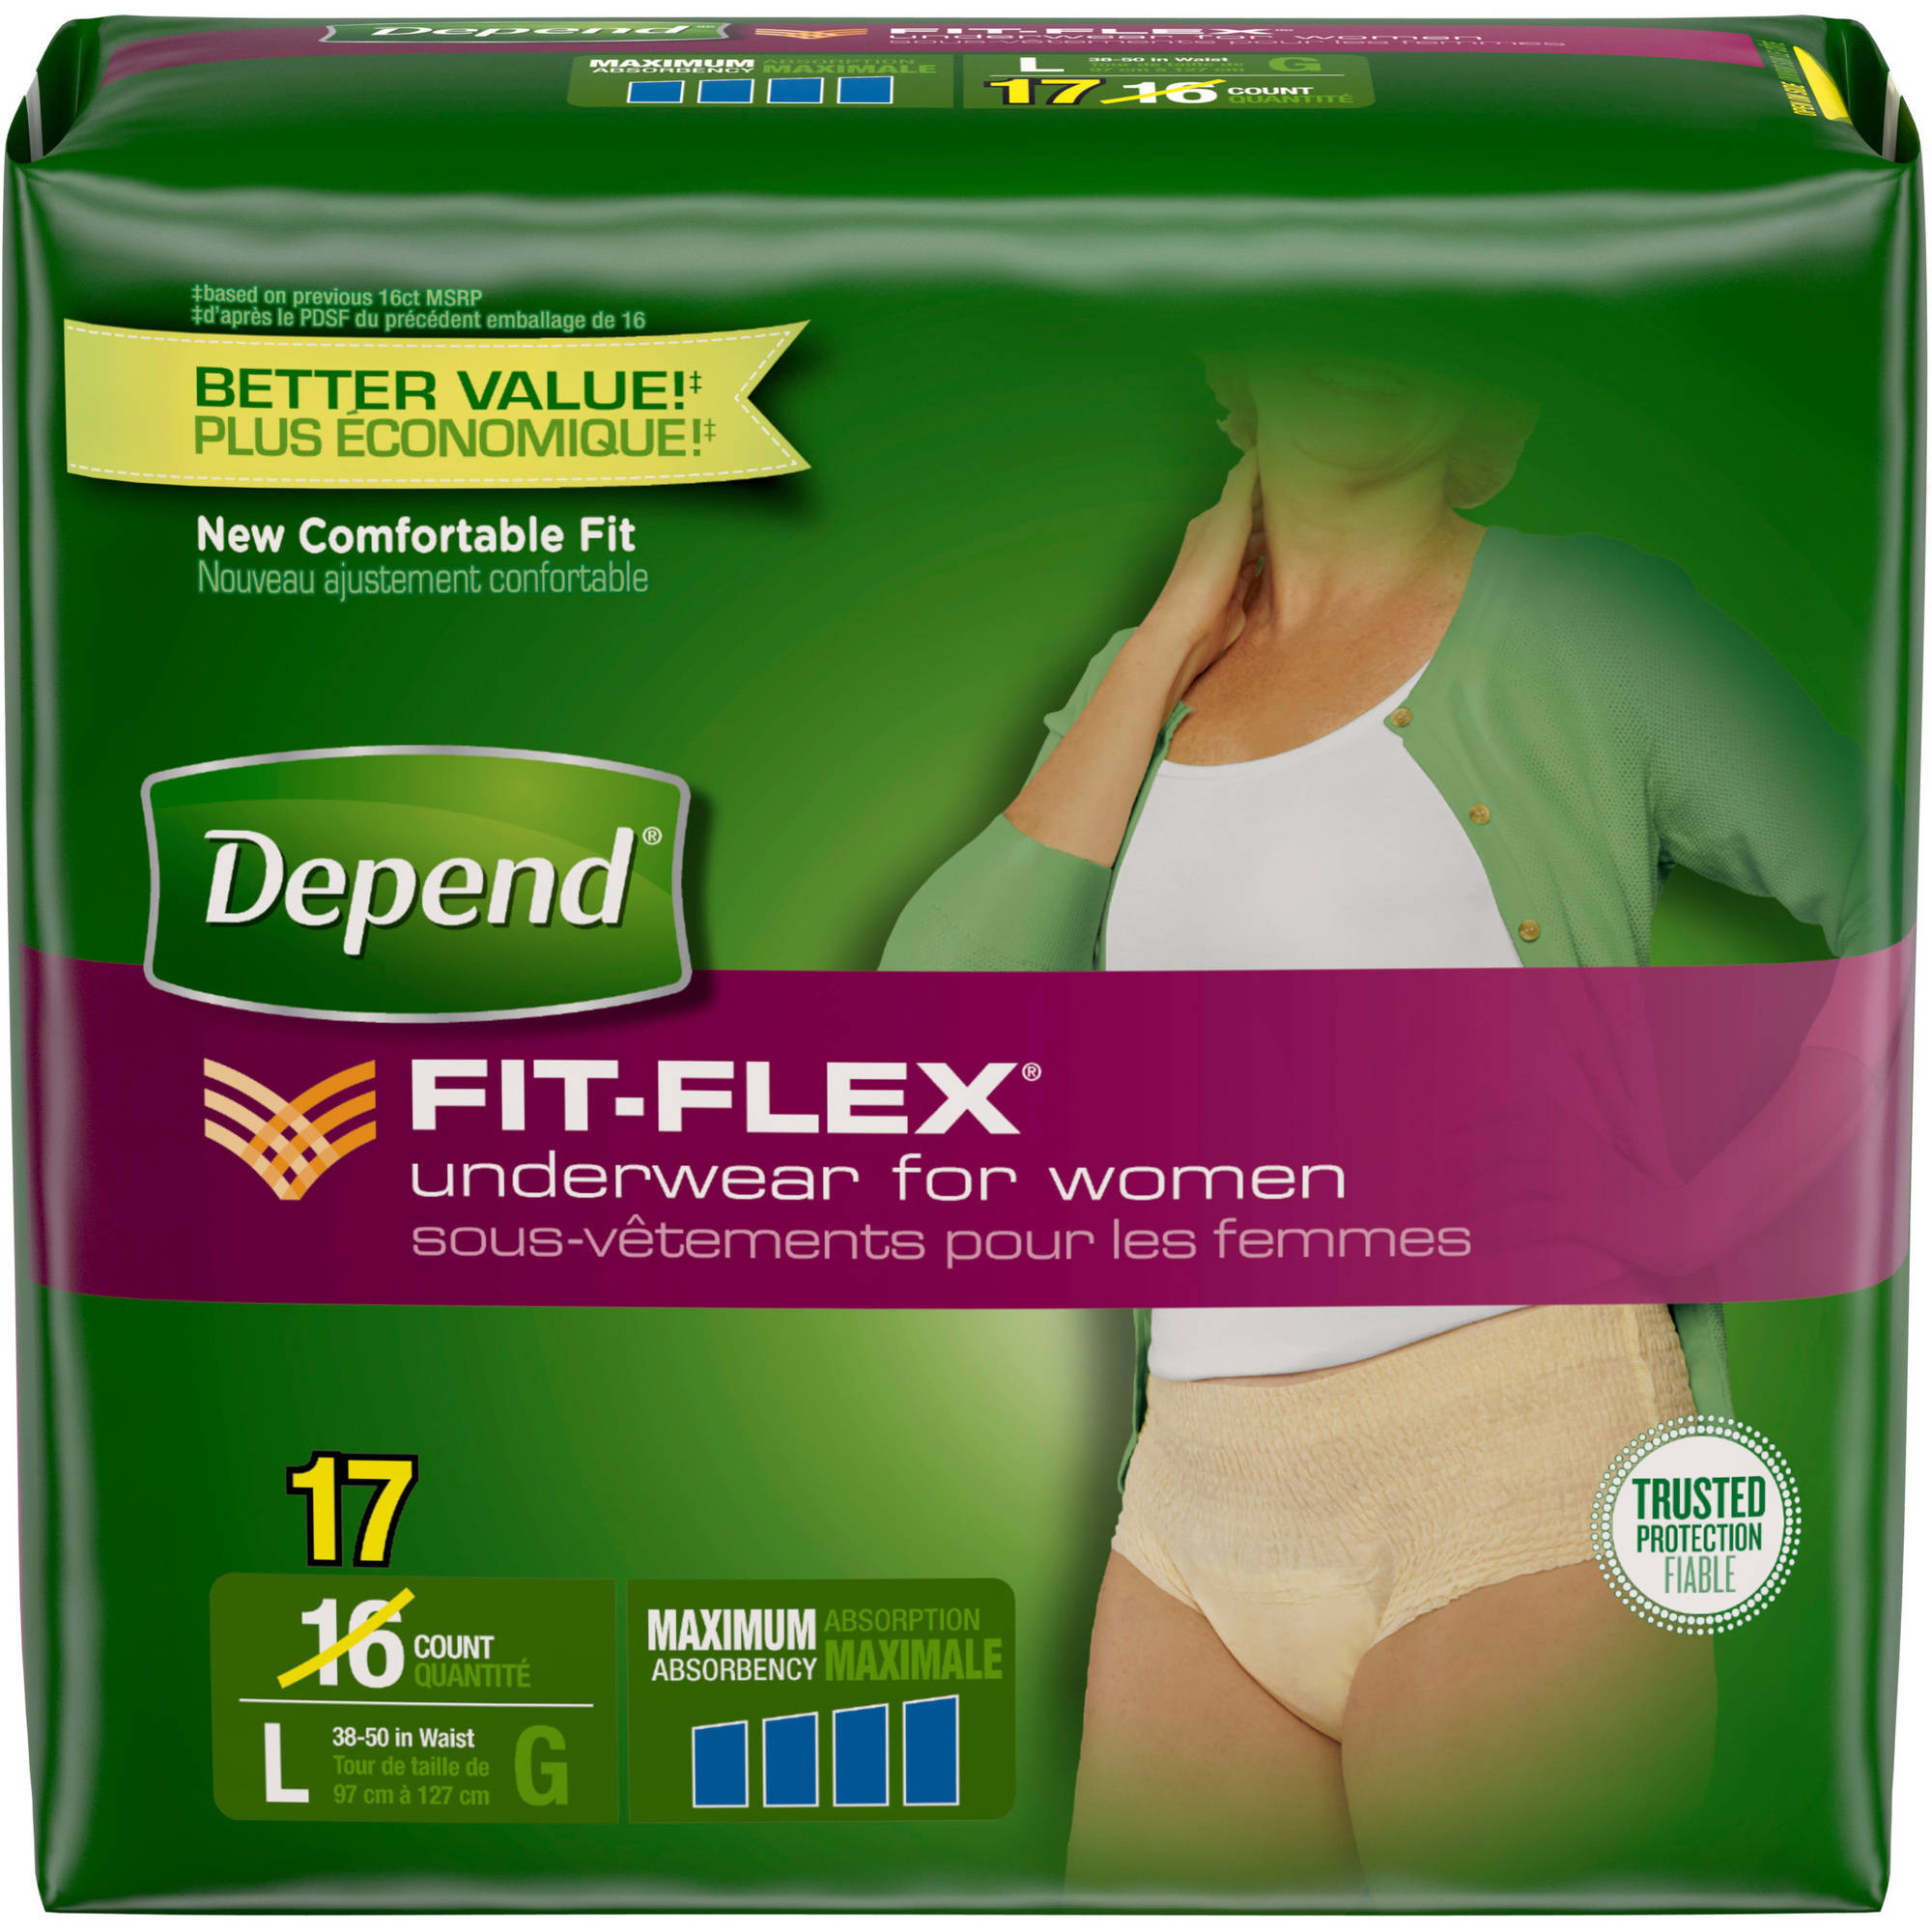 Depend FIT-FLEX Maximum Absorbency Underwear for Women, L, 17 count